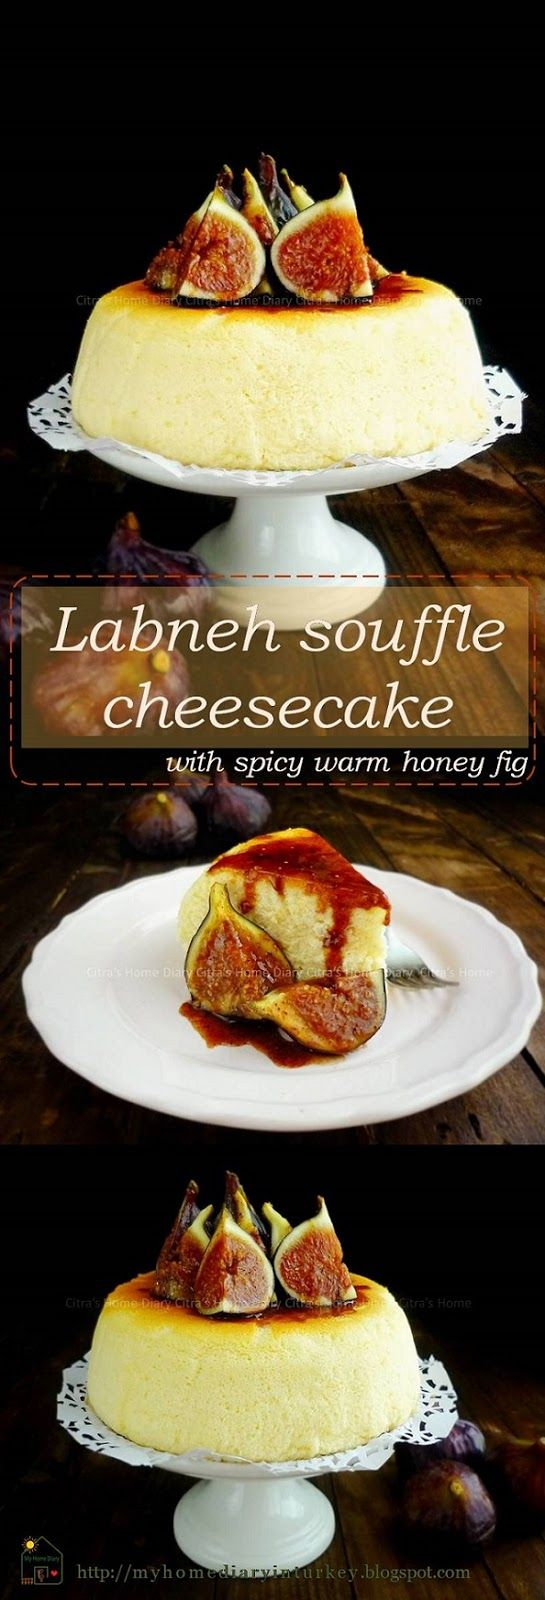 Labneh (strained yogurt) souffle cheesecake with spicy warm honey fig. To get this labneh, you need to drain/ strain plain thick yogurt at least over night or until 24 hour. Keep it inside refrigerator while you drain your yogurt. Use cheese cloth and put on sieve with a bowl for dropping whey underneath. #labneh #creamcheese #healthycreamcheese  #cheesesoufflecake #fig  #spicybakedfig #dessert #soufflecake #citrashomediary #middleeastern #yoghurtdessert